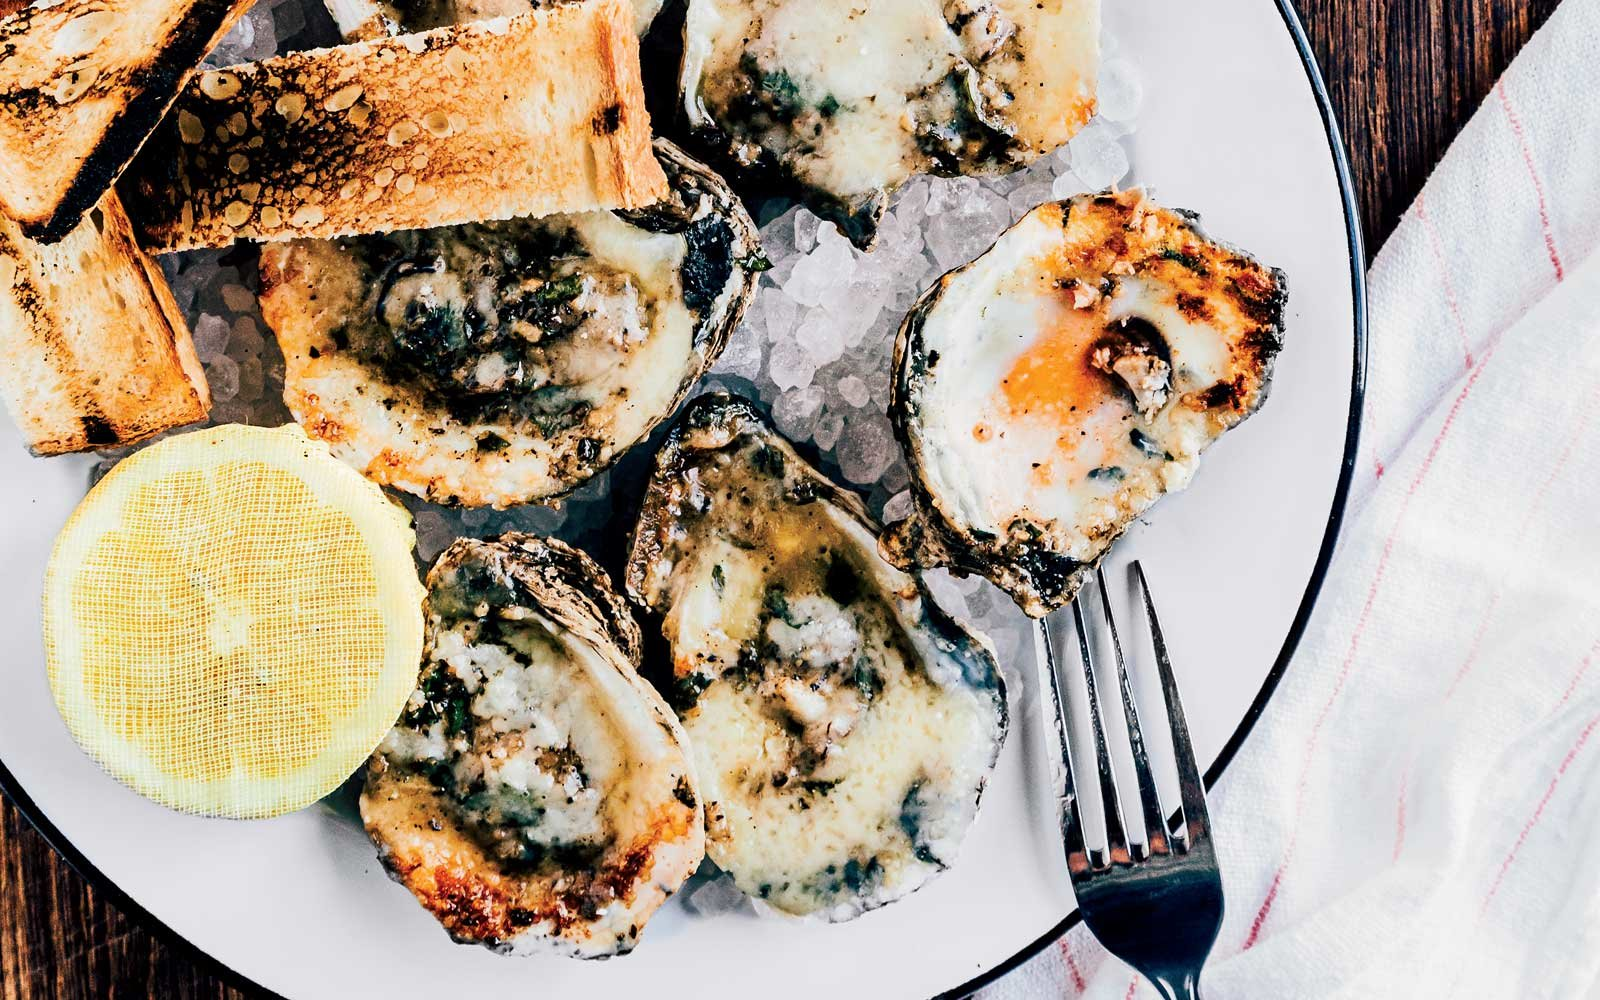 Oysters from Leon's Oyster Shop in Charleston, SC